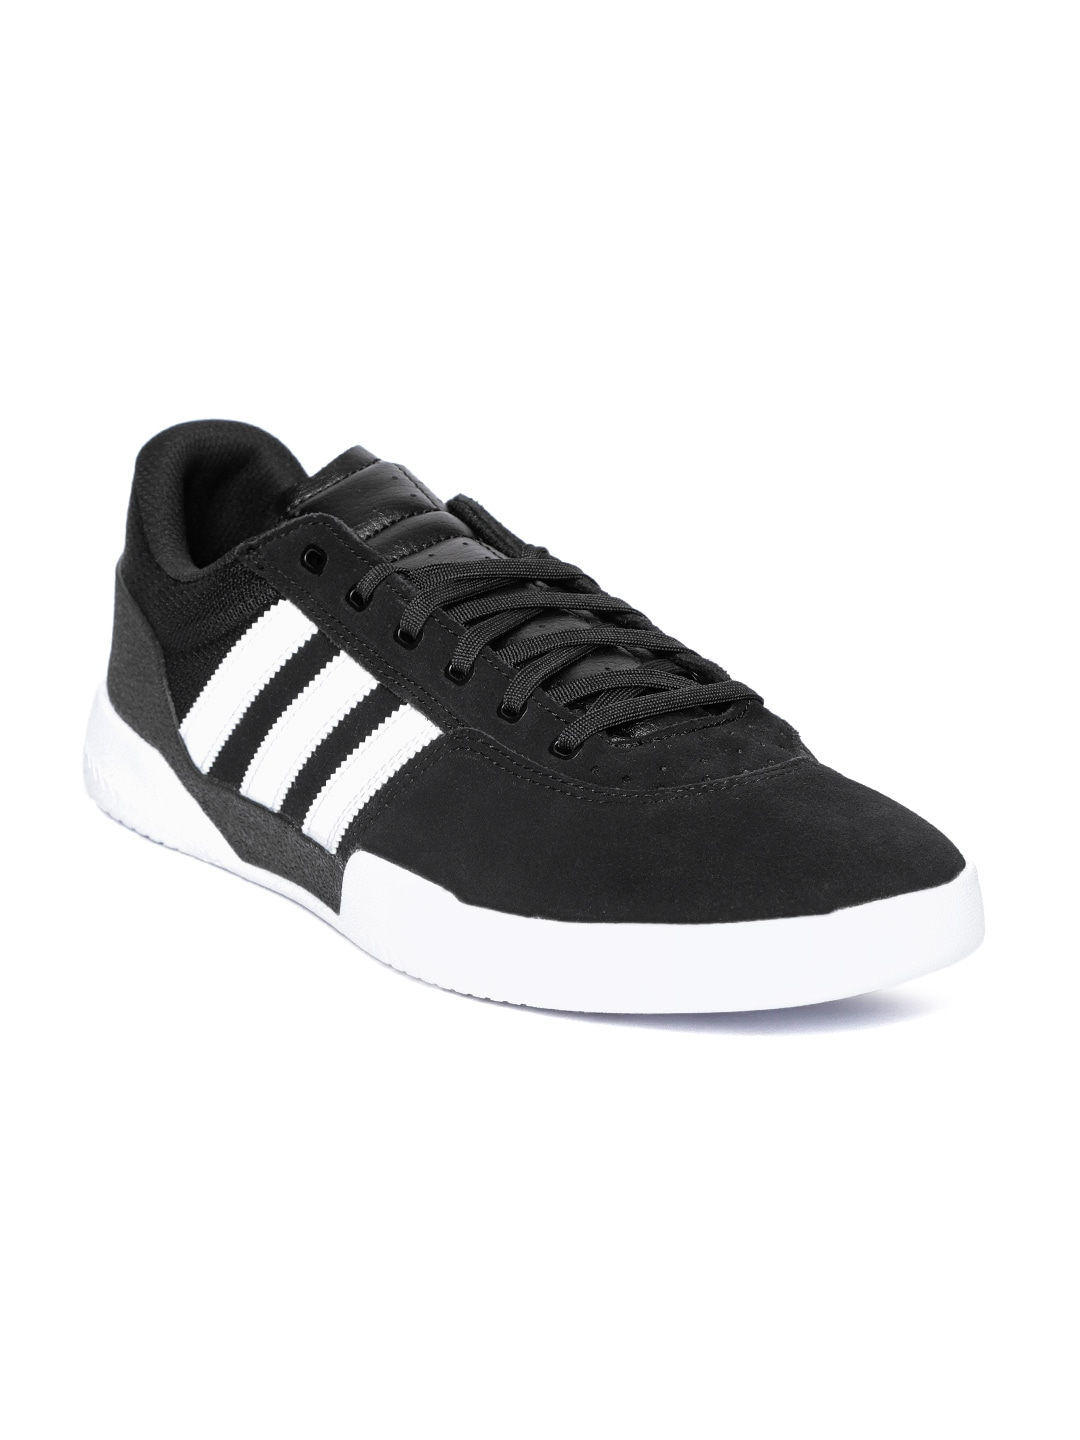 buy online dc712 4ab31 Casual Shoes For Men - Buy Casual   Flat Shoes For Men   Myntra